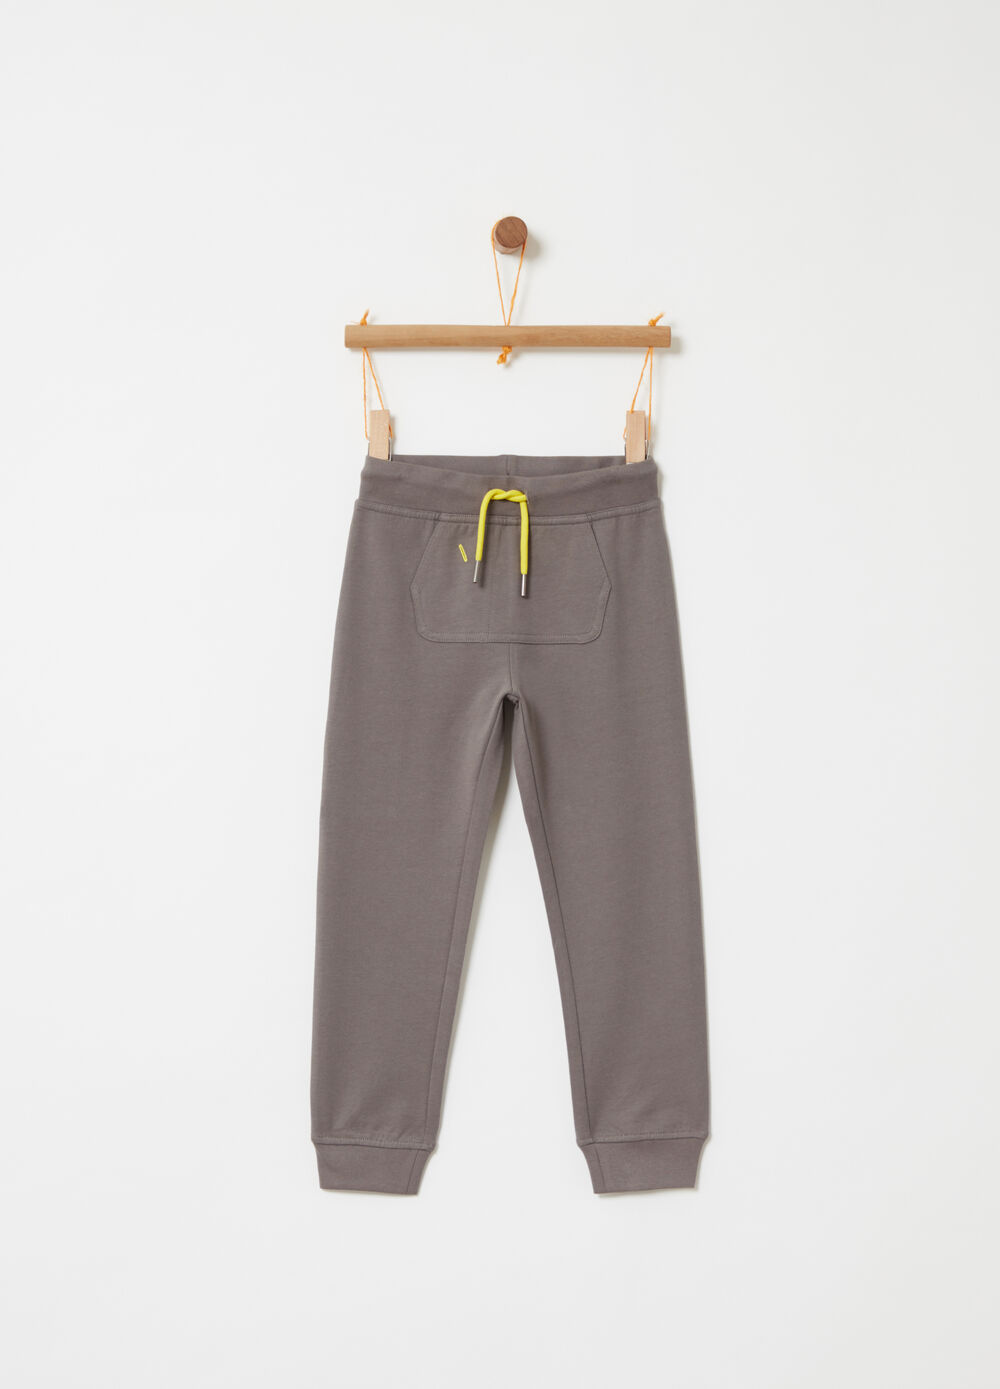 Trousers in lightweight fleece with pockets